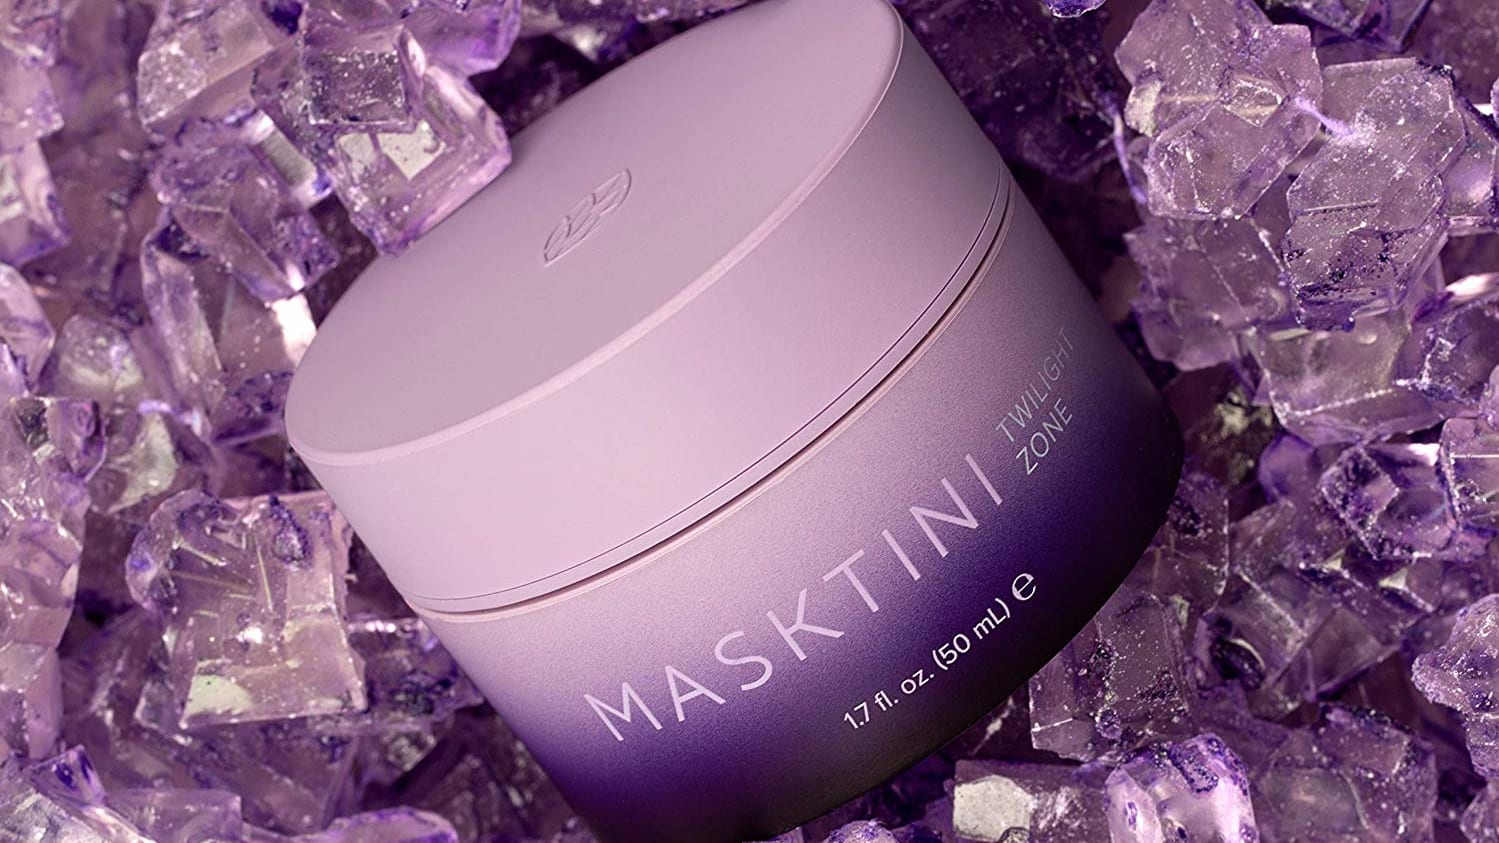 Masktini's Twilight Zone Purifying, Warming Face Mask Will Replace All Your Other Face Masks